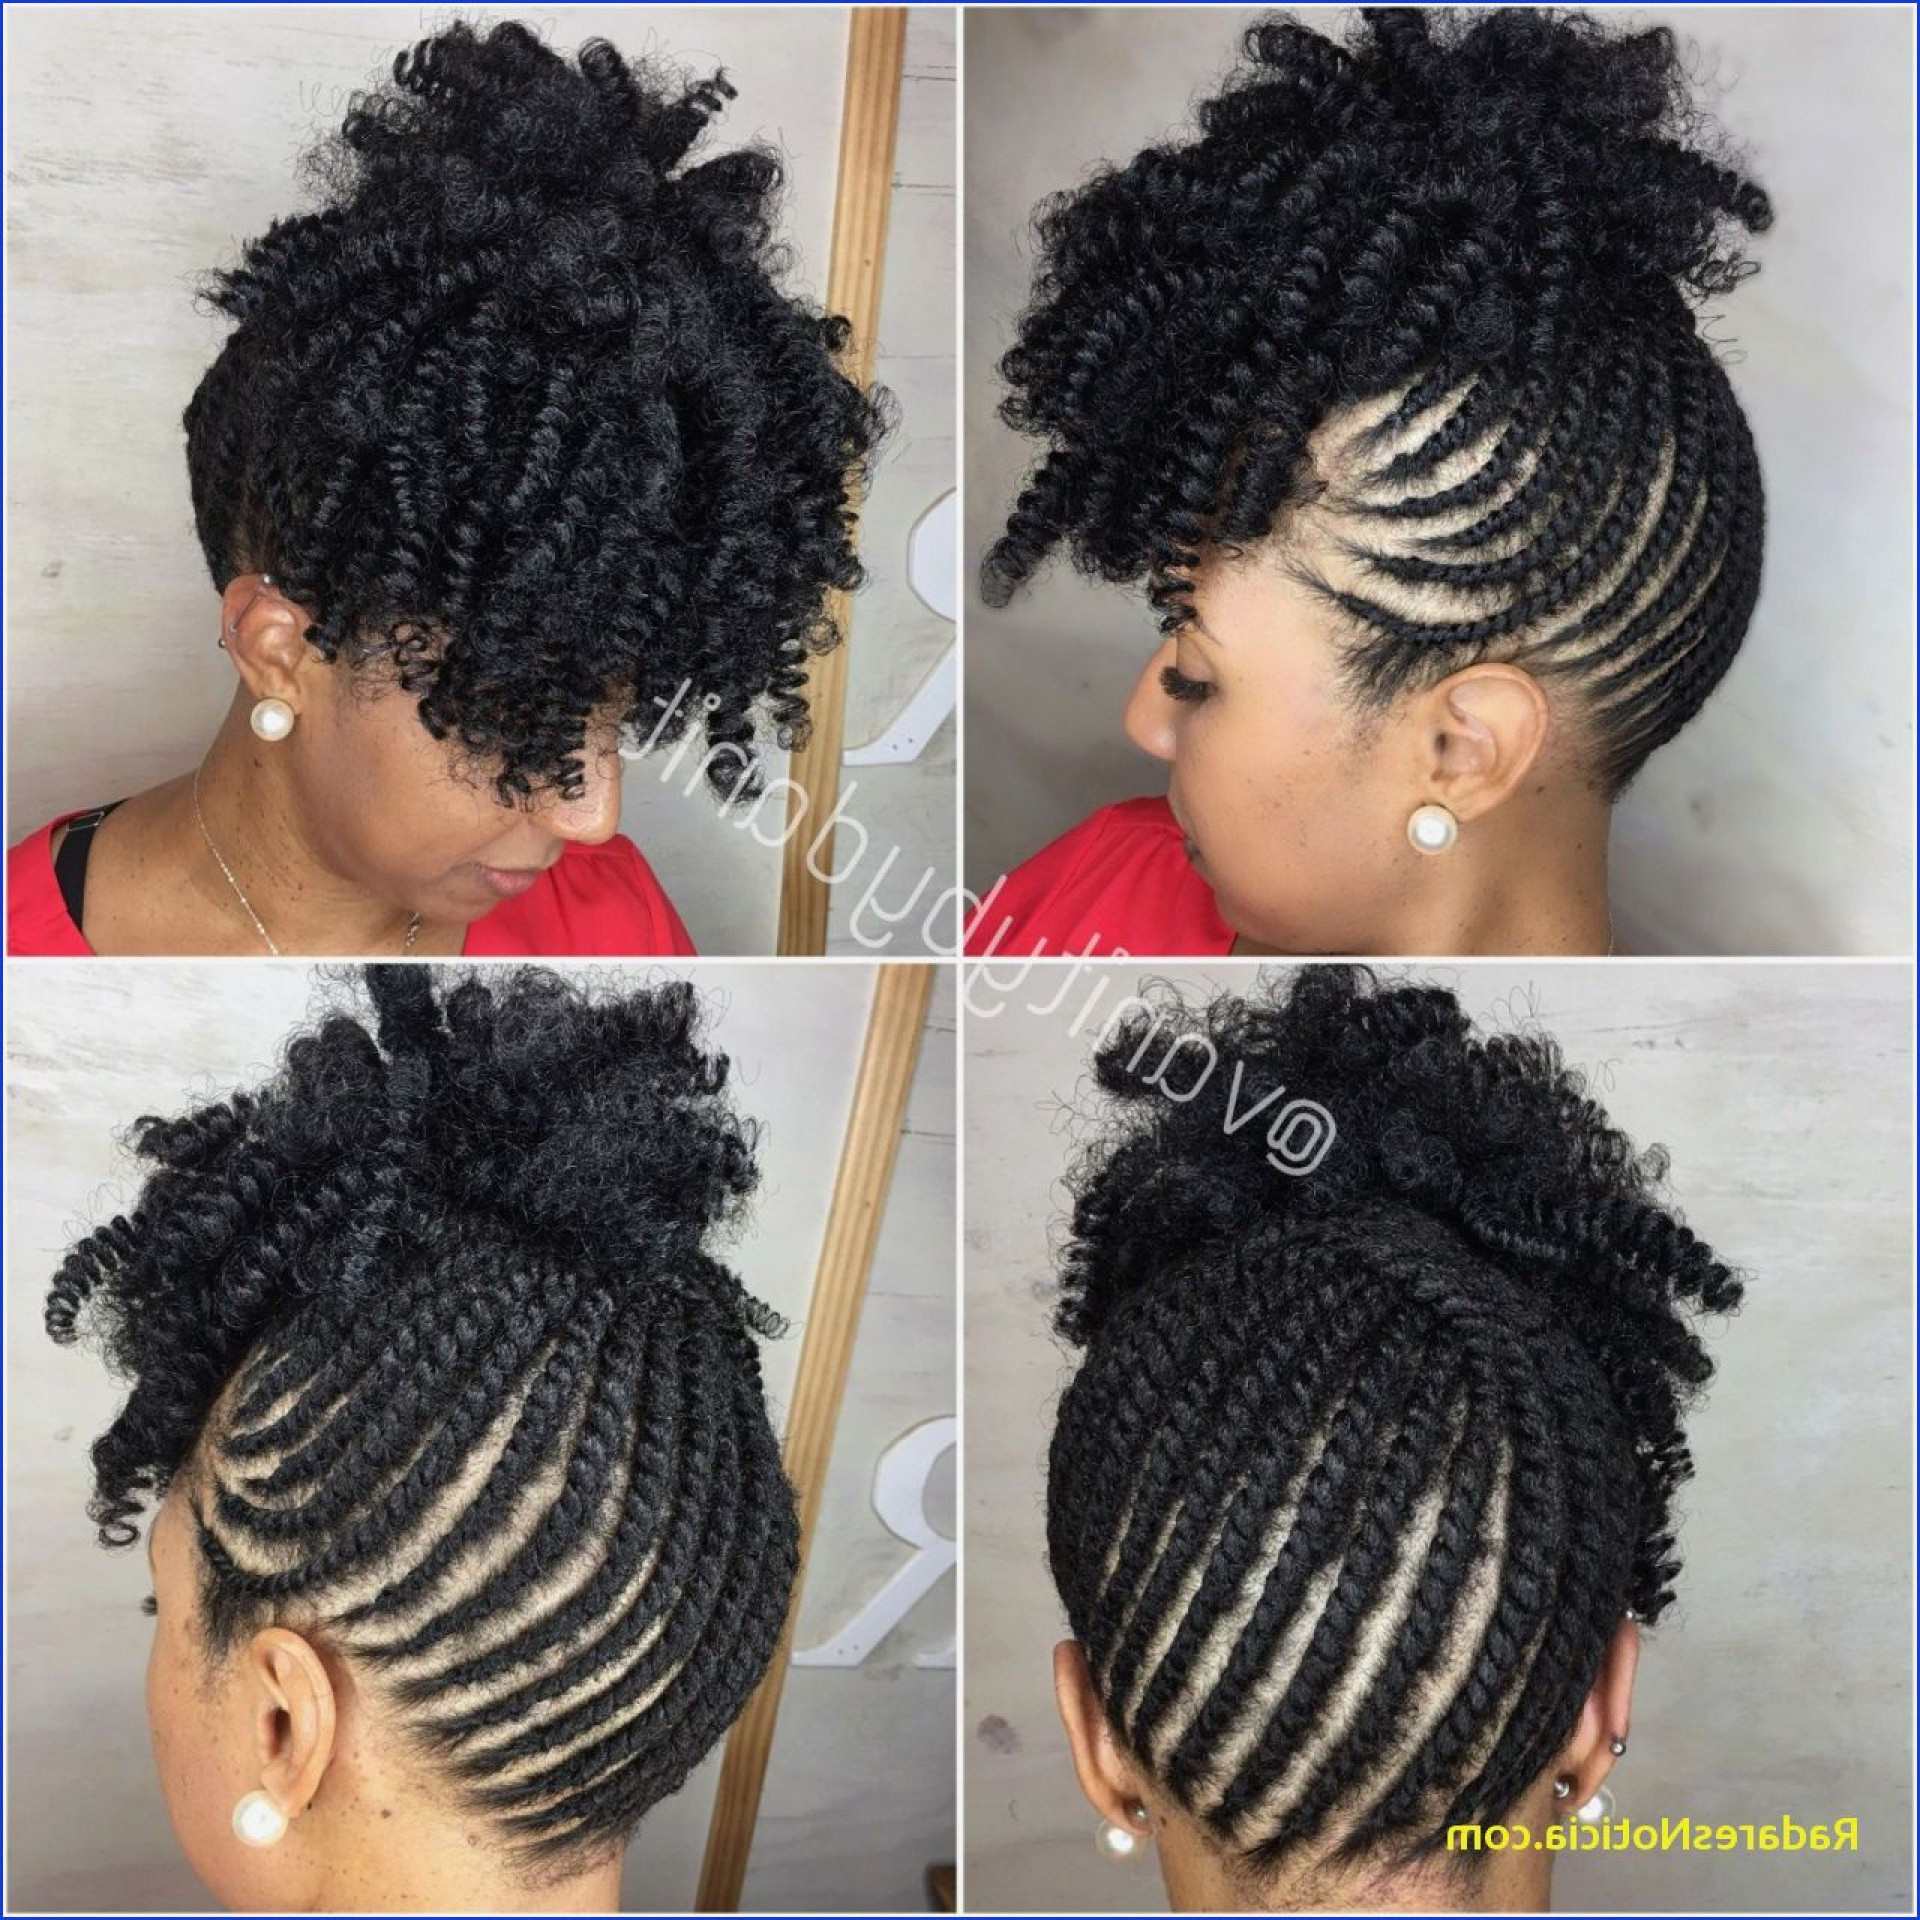 Braided Updo Hairstyles With Weave Lovely Bun And Bangs Intended For Most Recent Lovely Black Braided Updo Hairstyles (View 2 of 20)